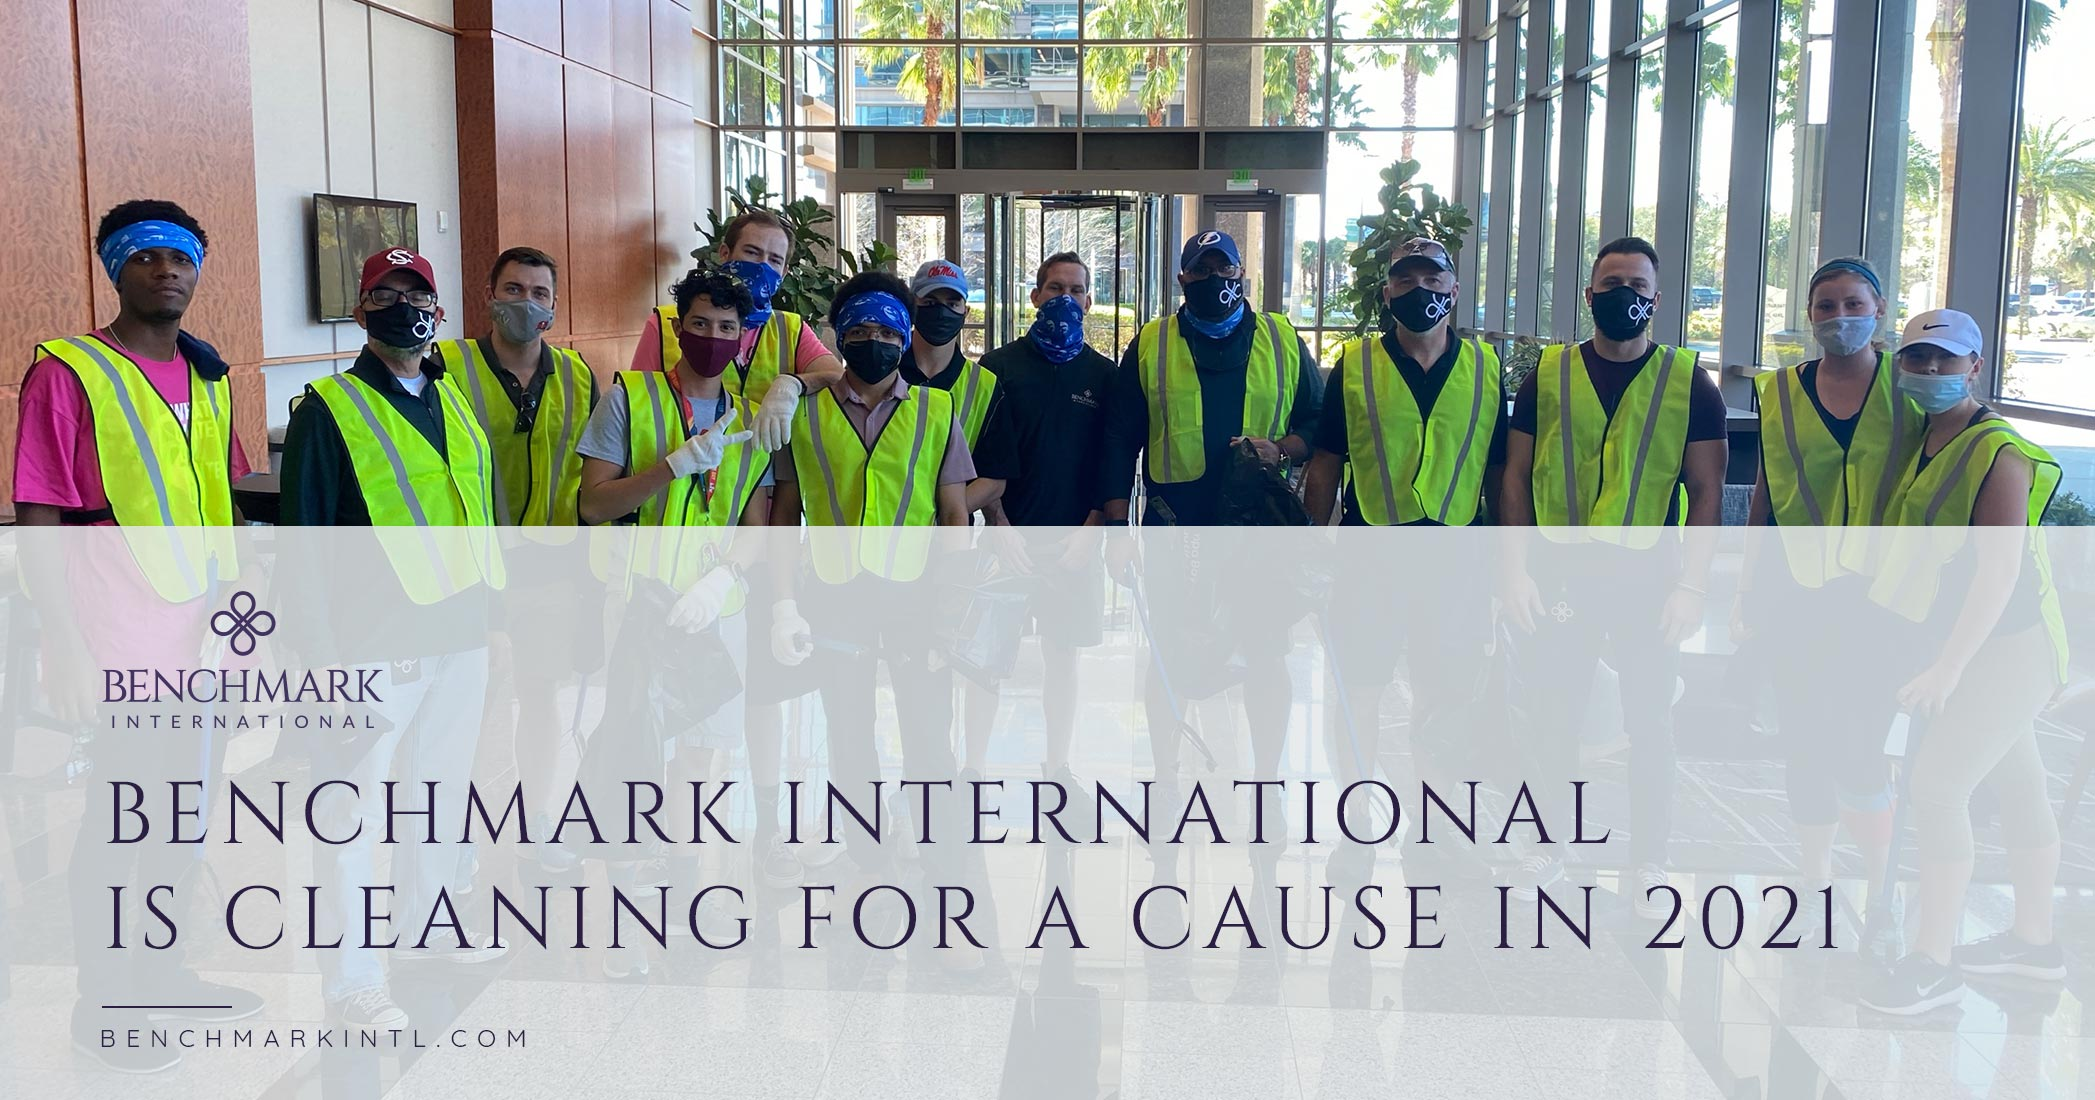 Benchmark International is Cleaning for a Cause in 2021